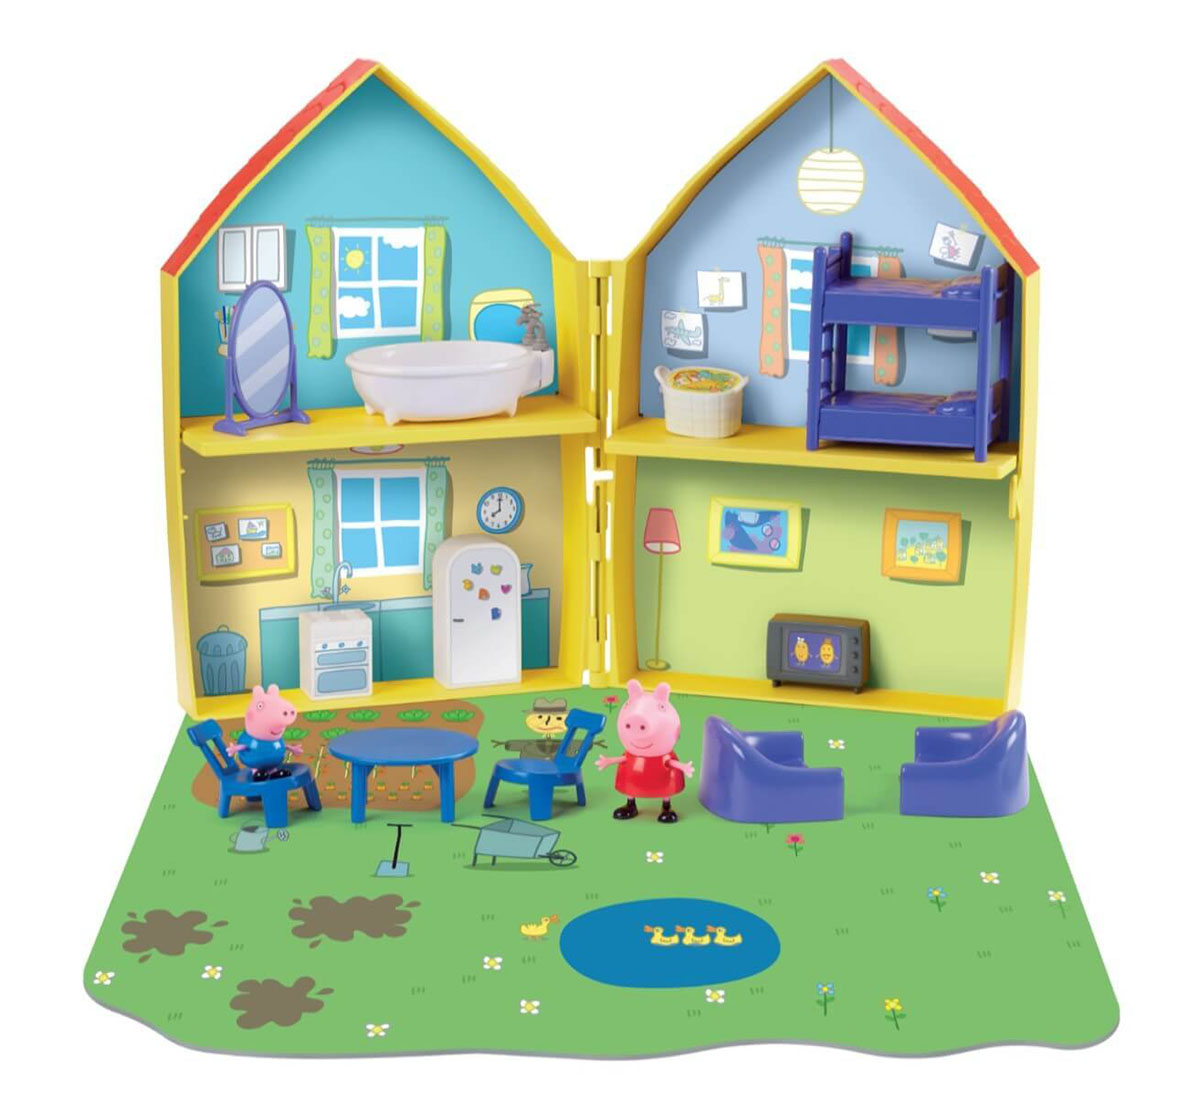 Peppa Pig | Peppa Pig - 16-Piece Playhouse With Peppa And George Pig Figures (Multicolour)